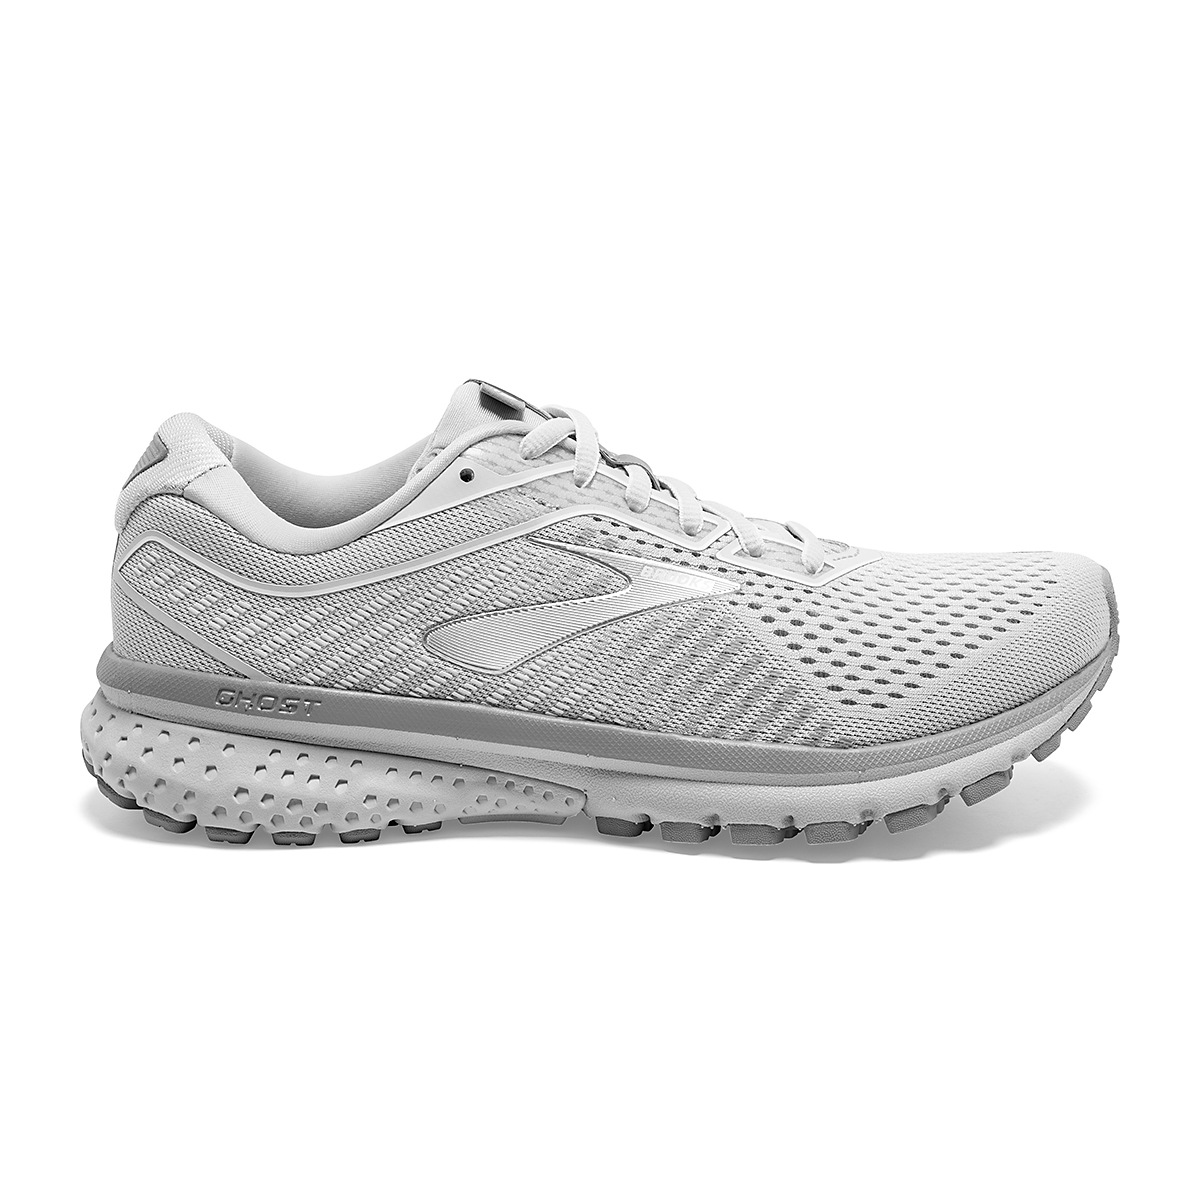 Women's Brooks Ghost 12 Running Shoe - Color: Oyster/Alloy/White - Size: 8.5 - Width: Regular, Oyster/Alloy/White, large, image 1